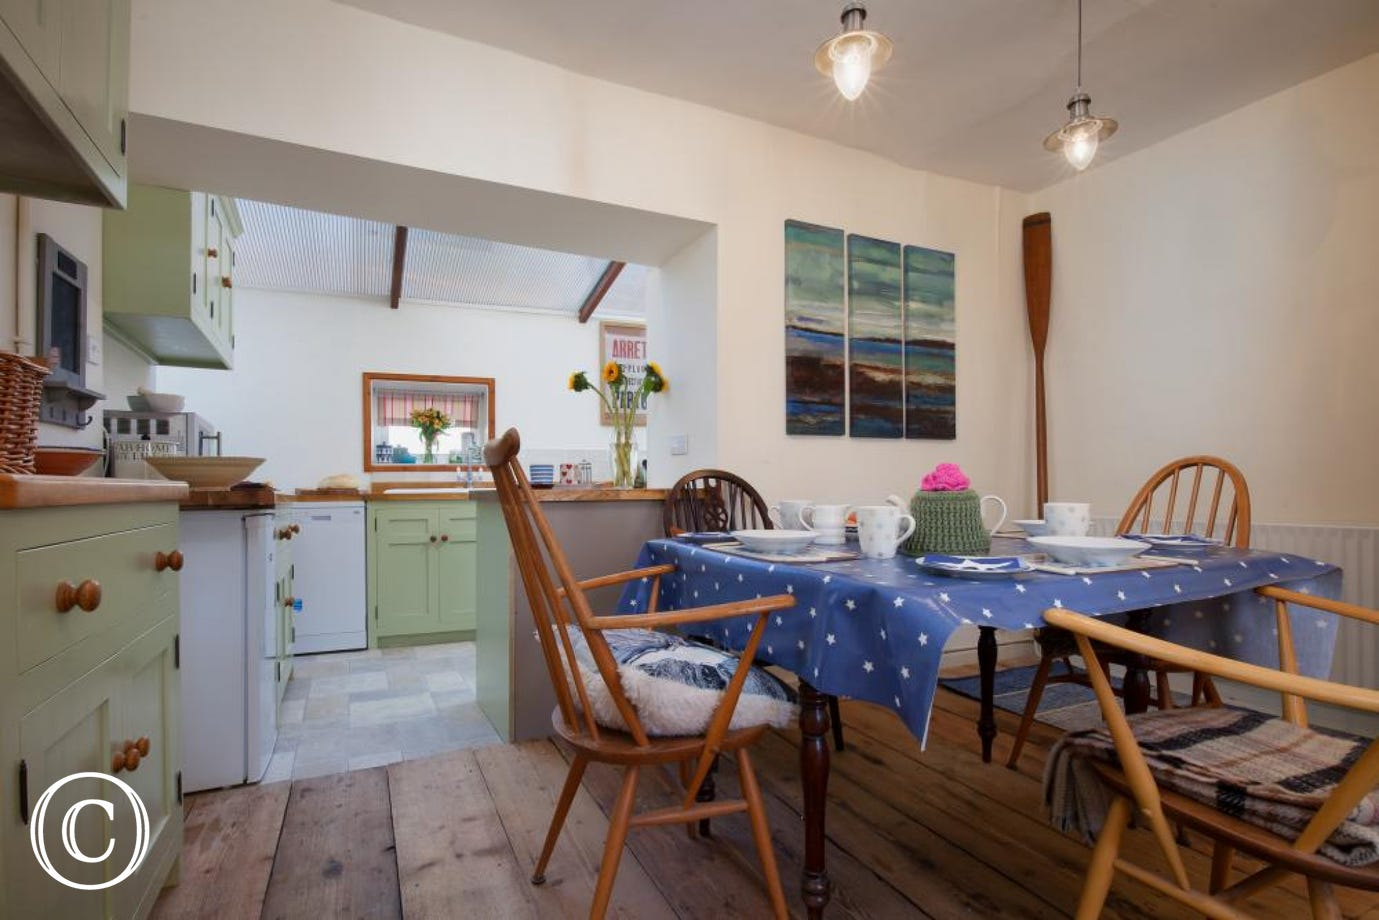 Star Cottage, Shaldon - Dining table and kitchen area